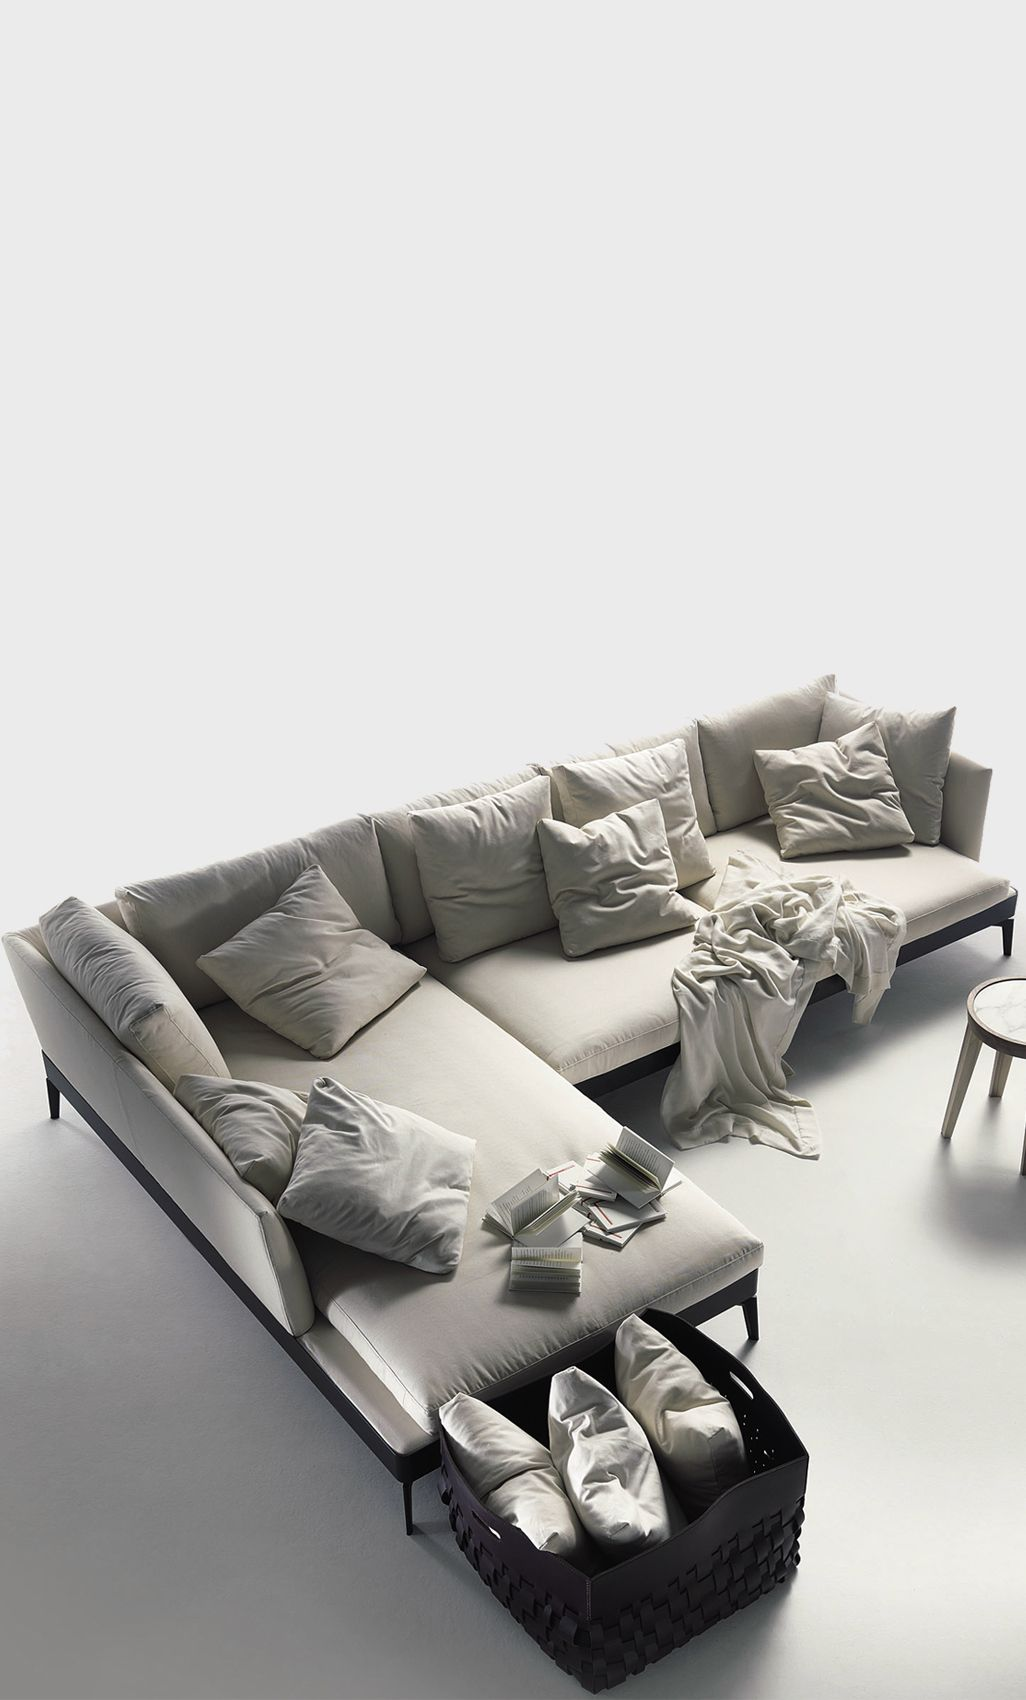 Flexform Feel Good Sessel Preis Feel Good Sofa Flexform Sofa Pinterest Sofa Modular Sofa